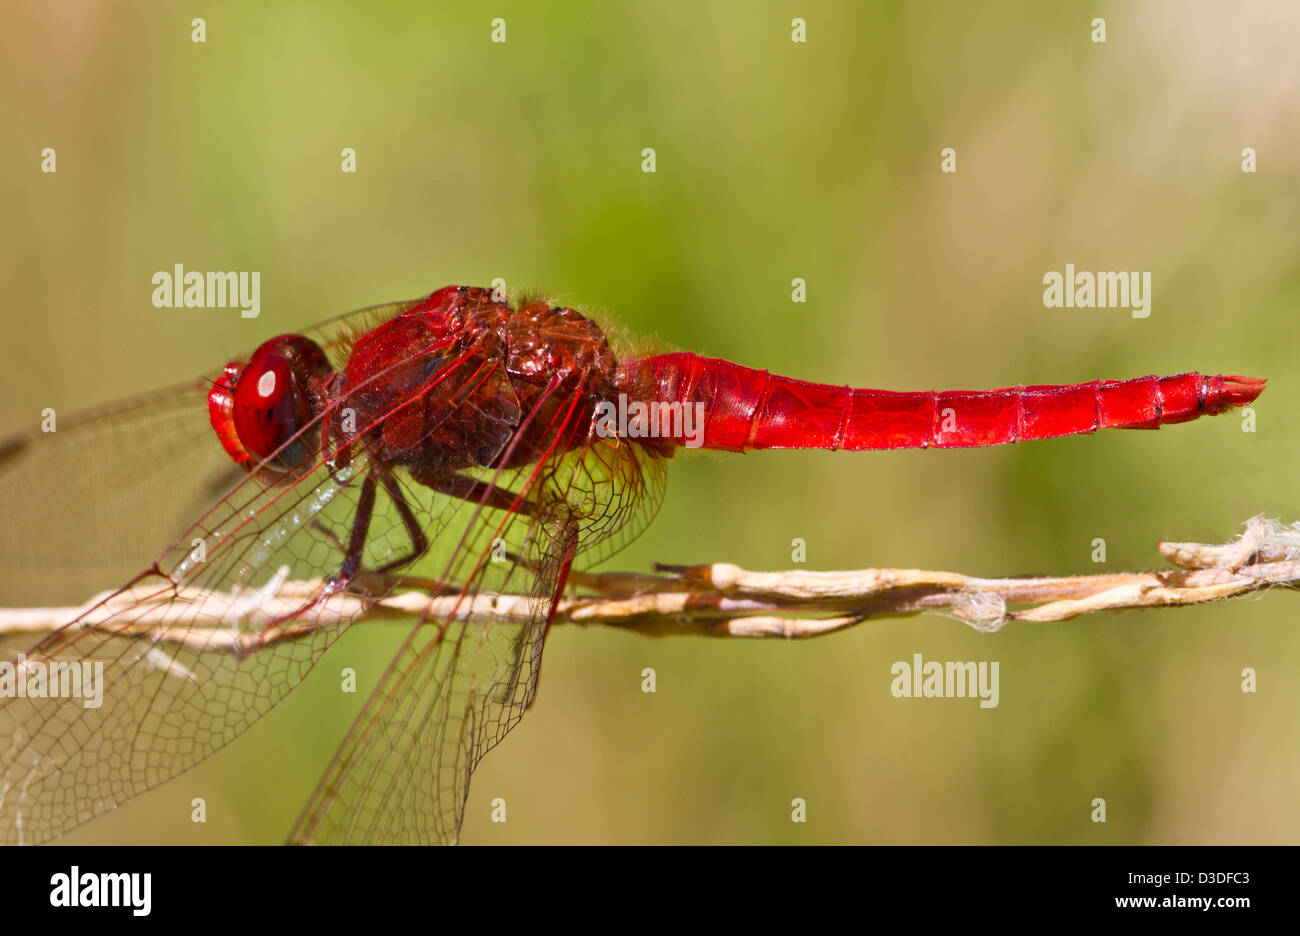 Close up view of a Scarlet Darter (Crocothemis erythraea) dragonfly insect. Stock Photo